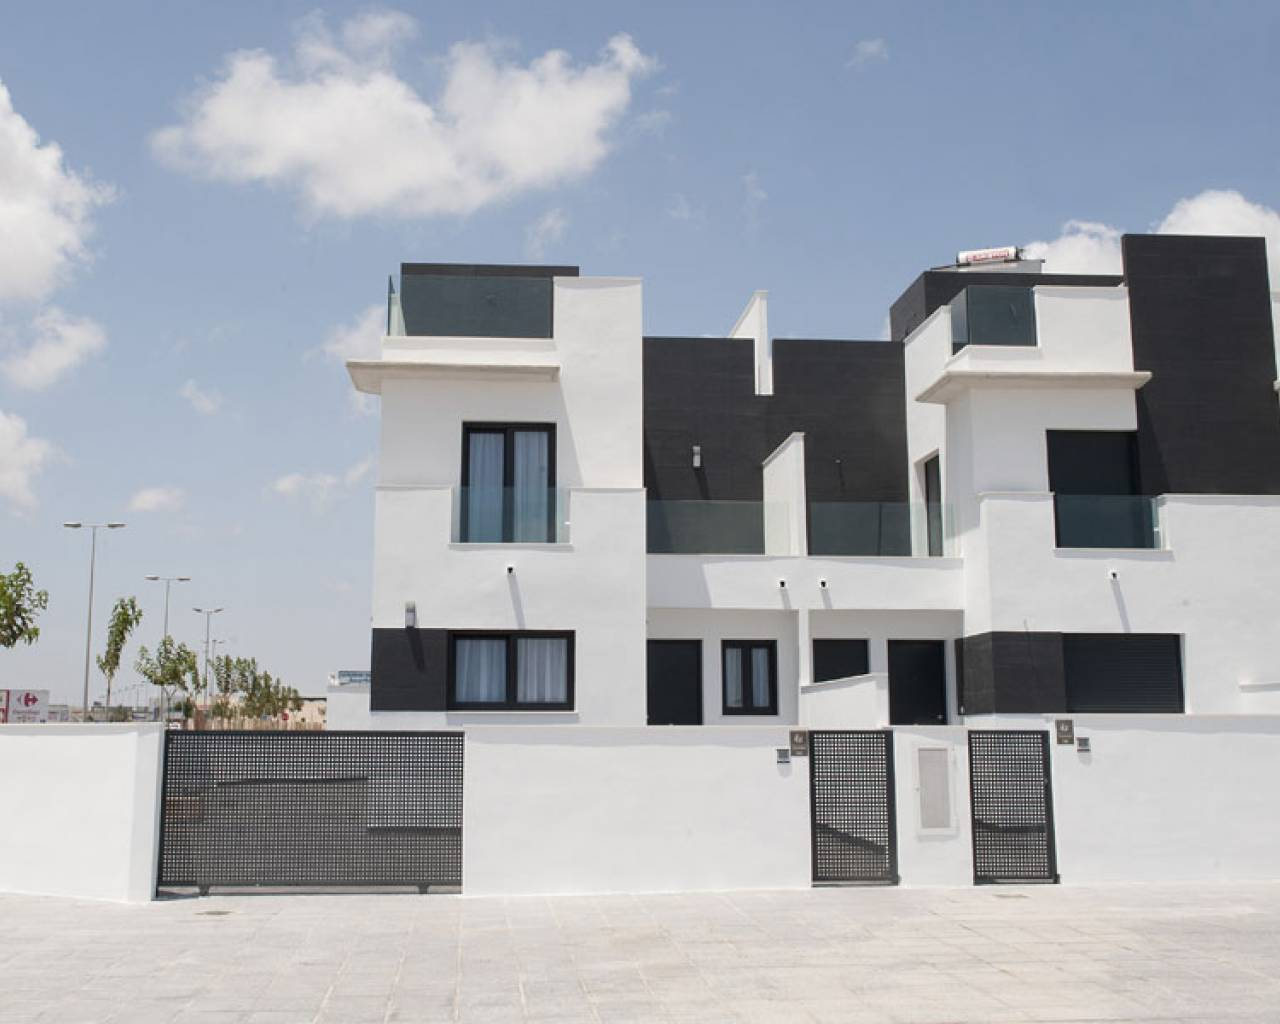 New build - Townhouse / Duplex - Pilar de la Horadada - Torre de la Horadada